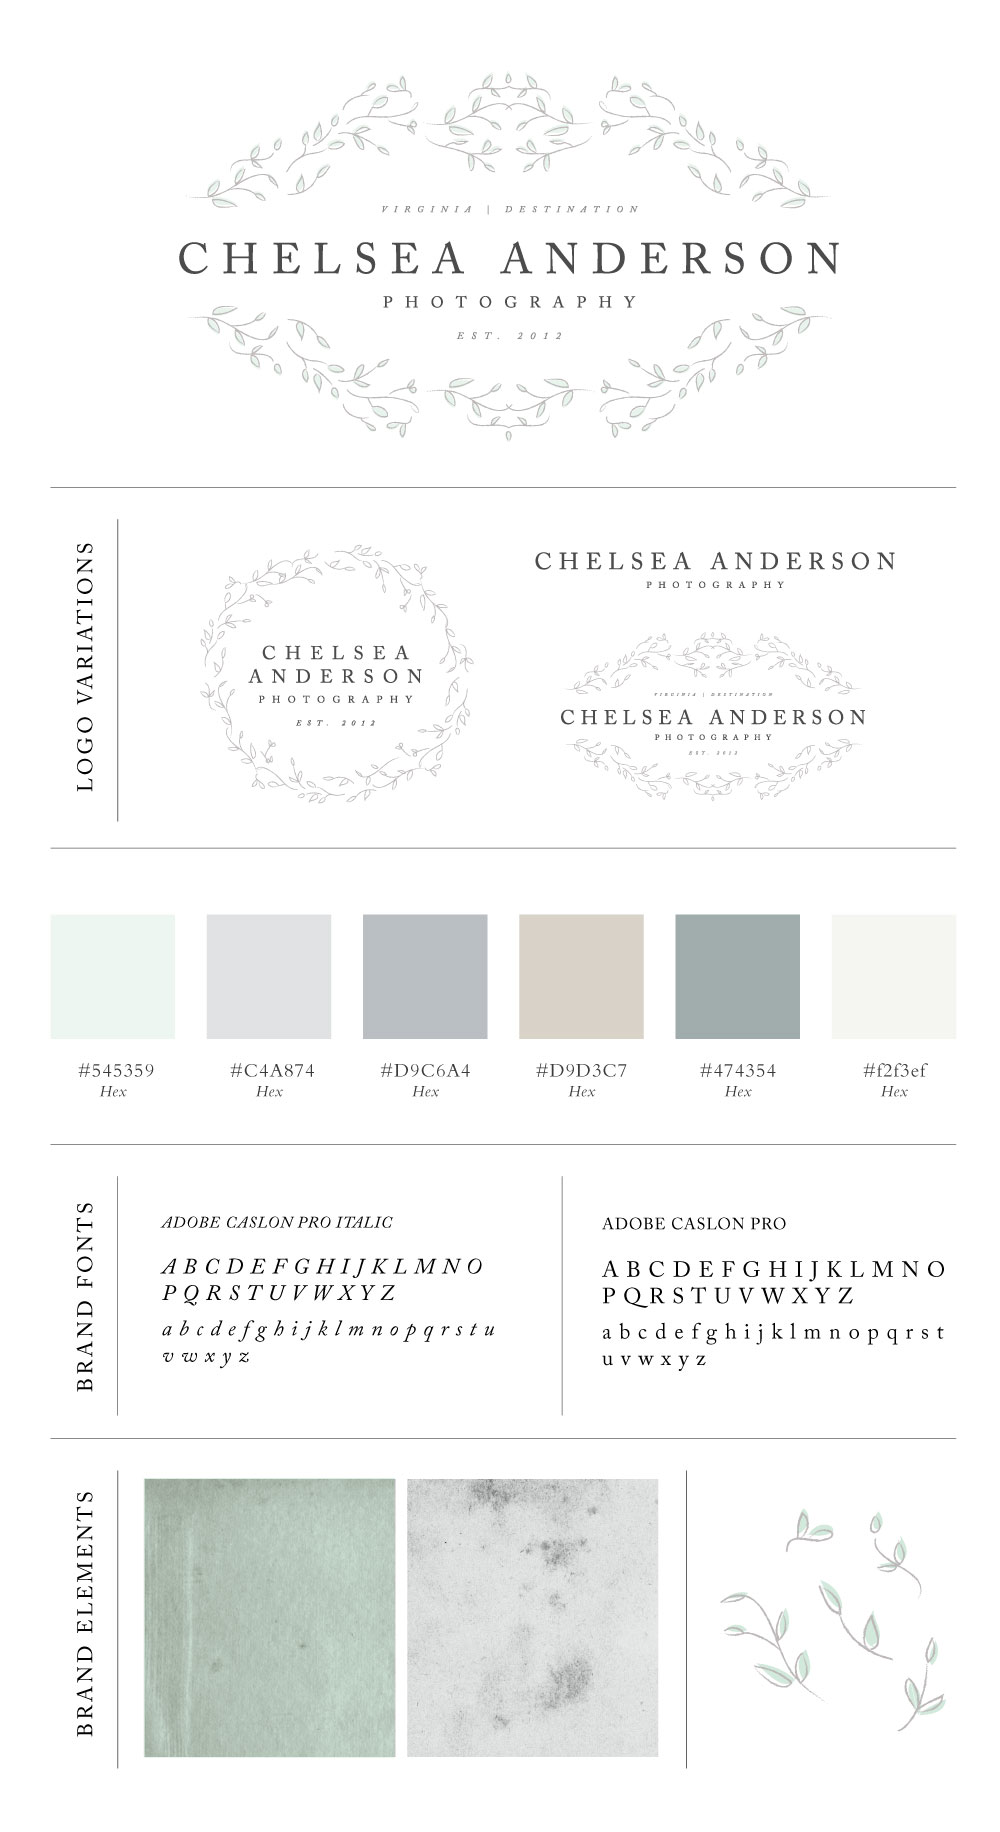 Classic brand design for photographer Chelsea Anderson by Davey & Krista